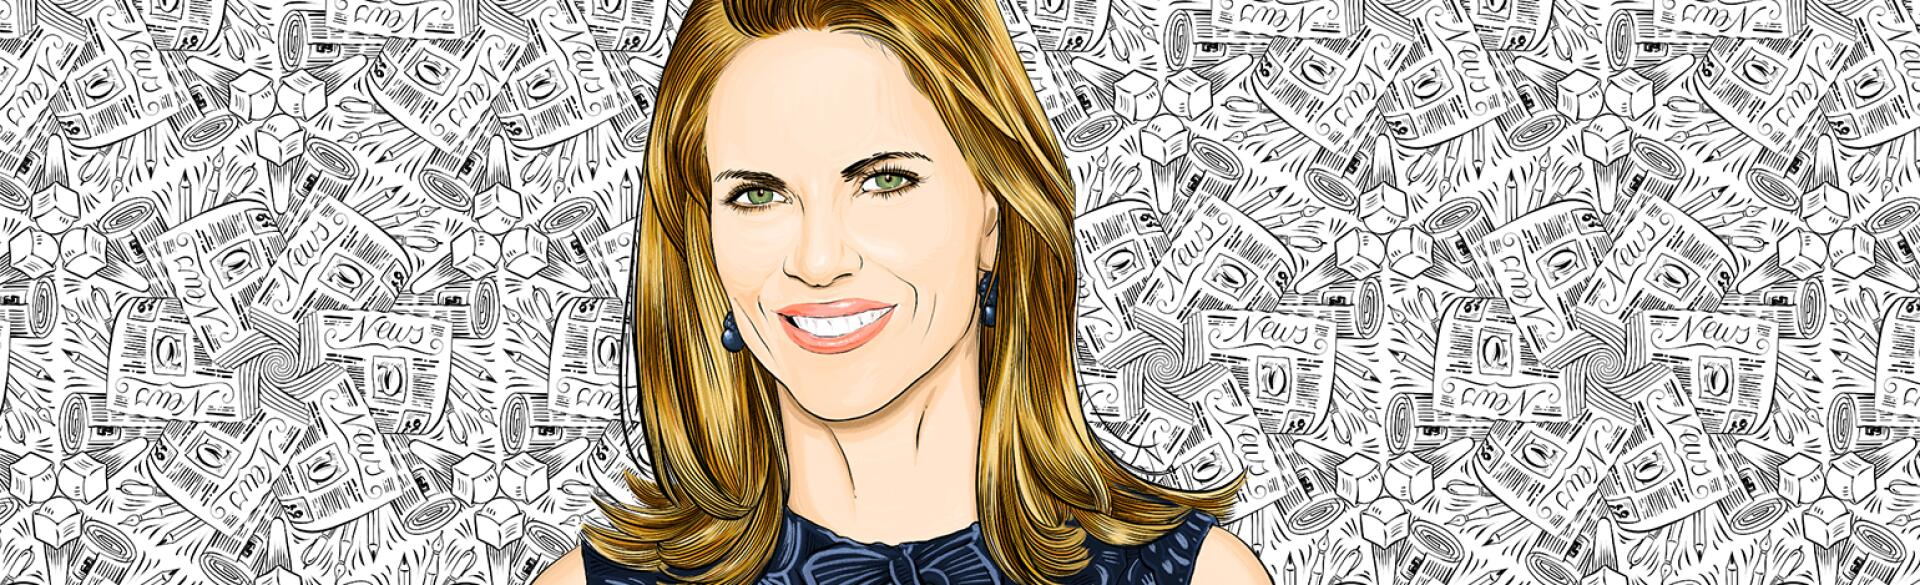 illustration of former news anchor natalie morales